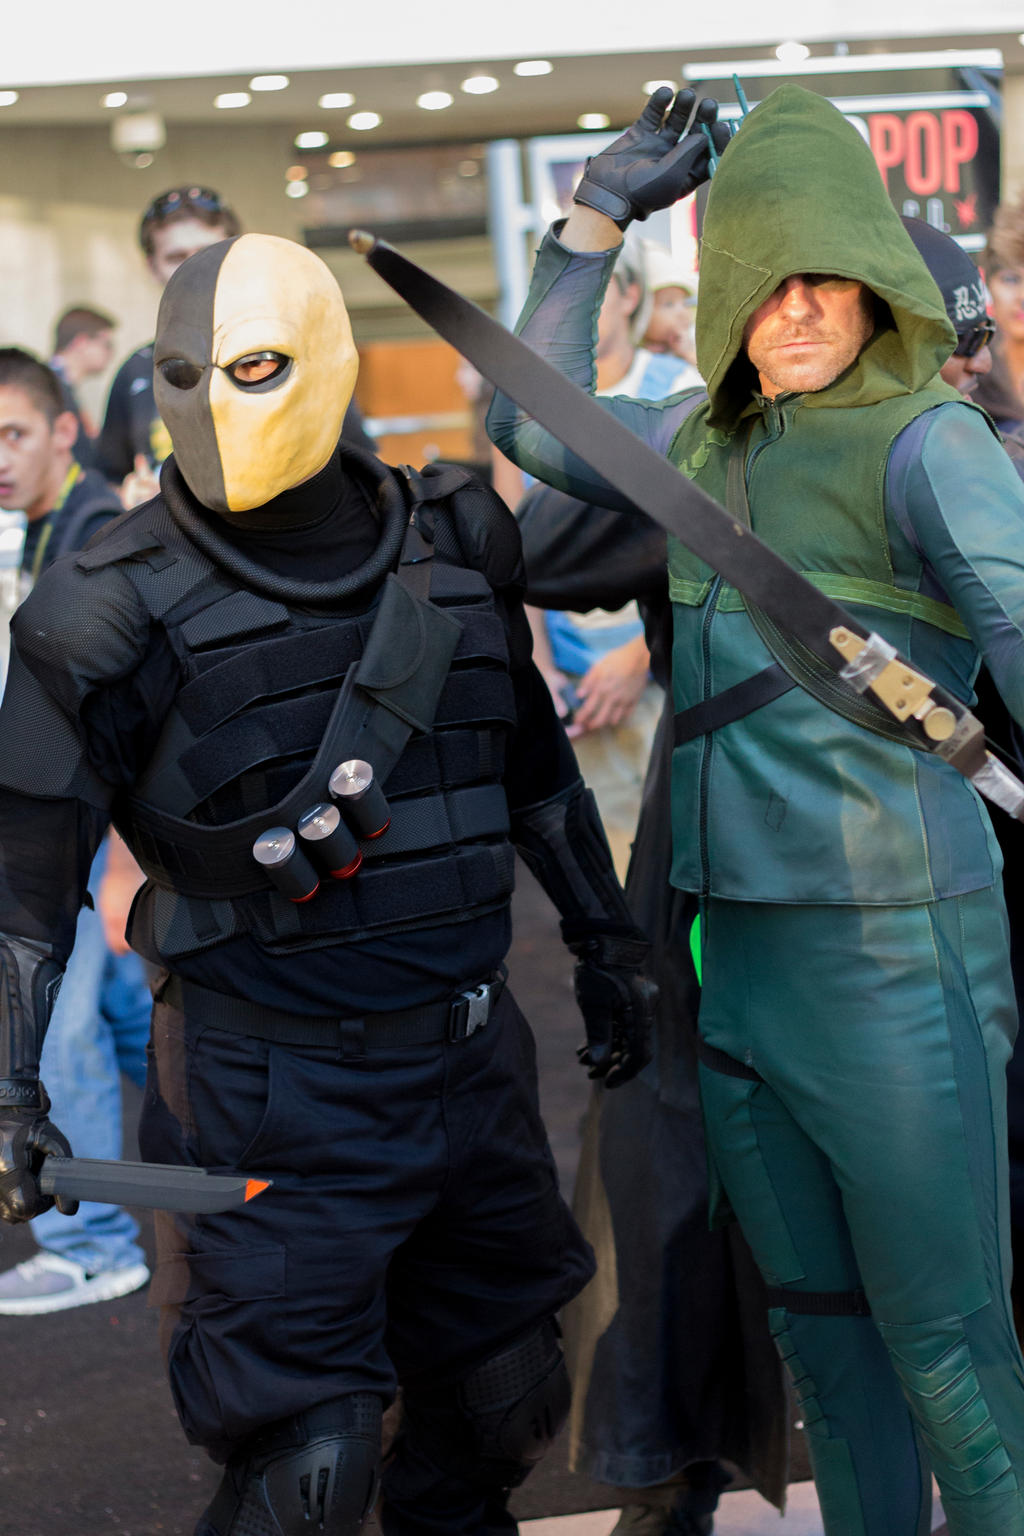 deathstroke arrow cosplay - photo #11